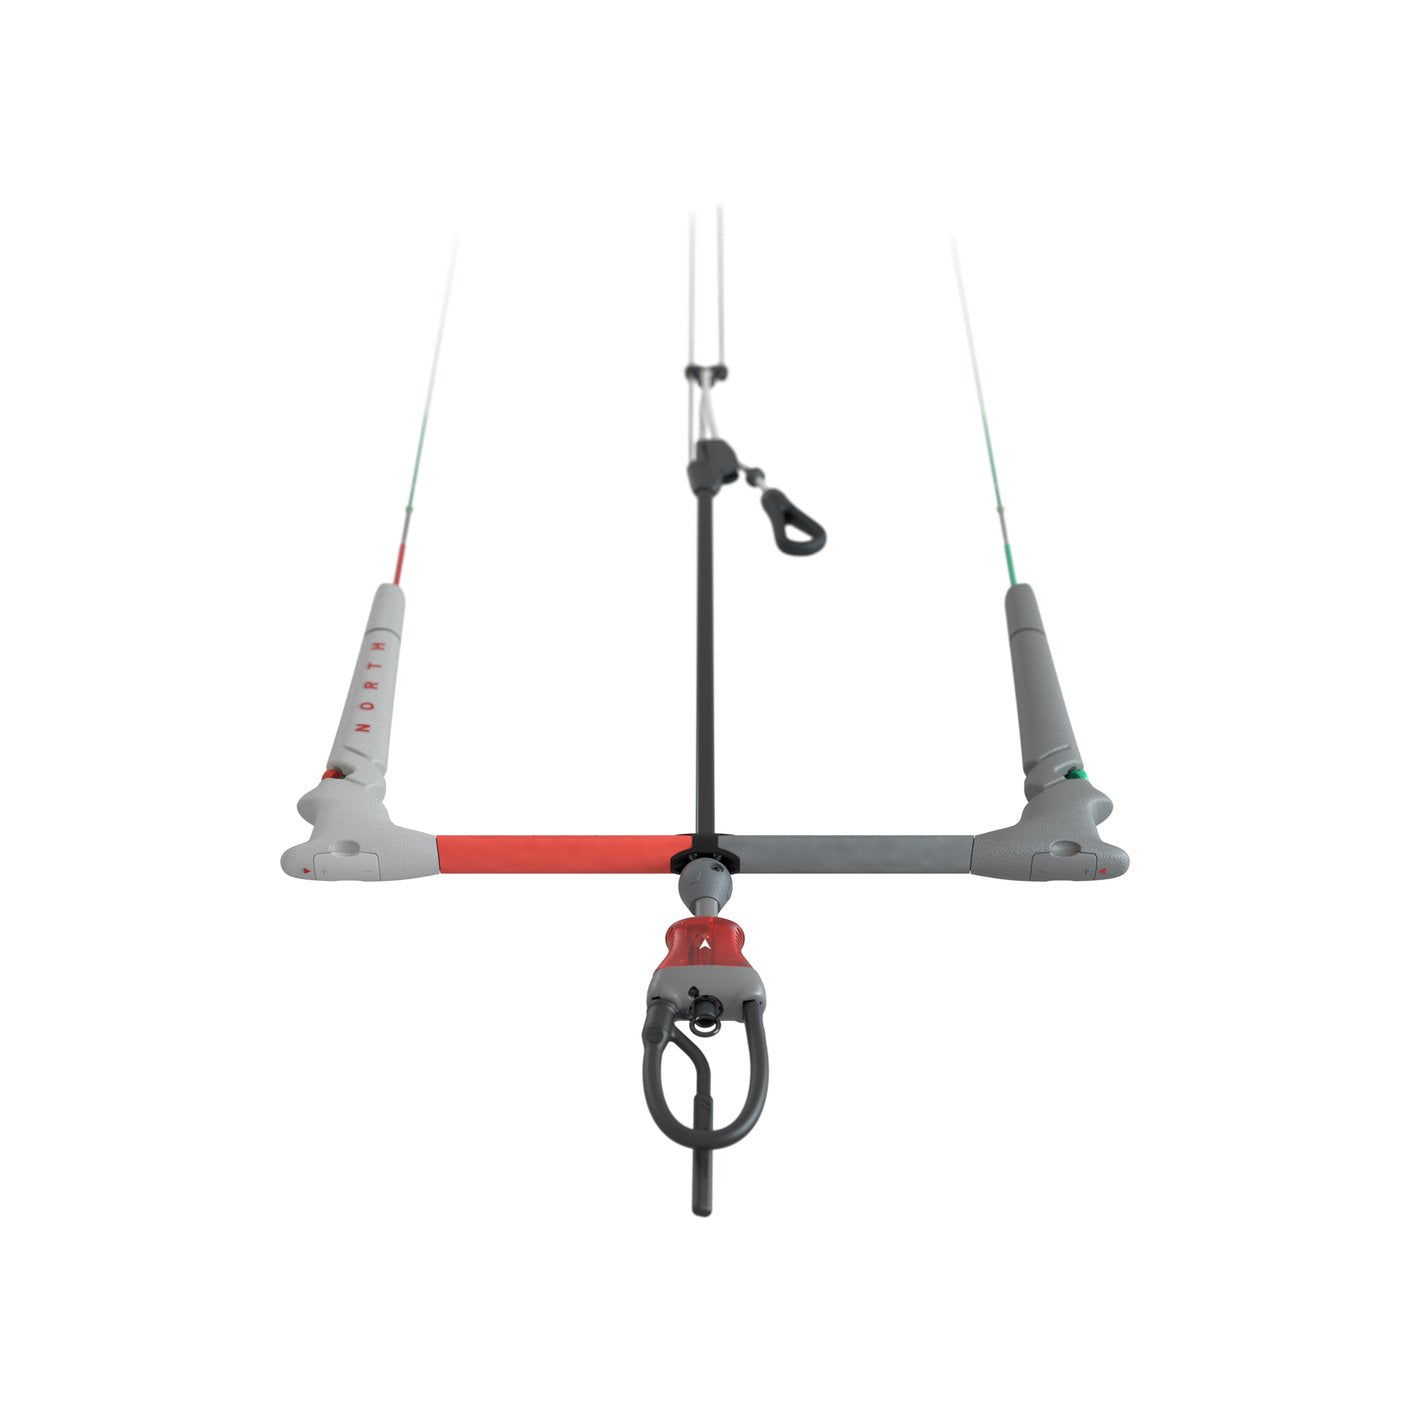 Control bar for kiteboarding